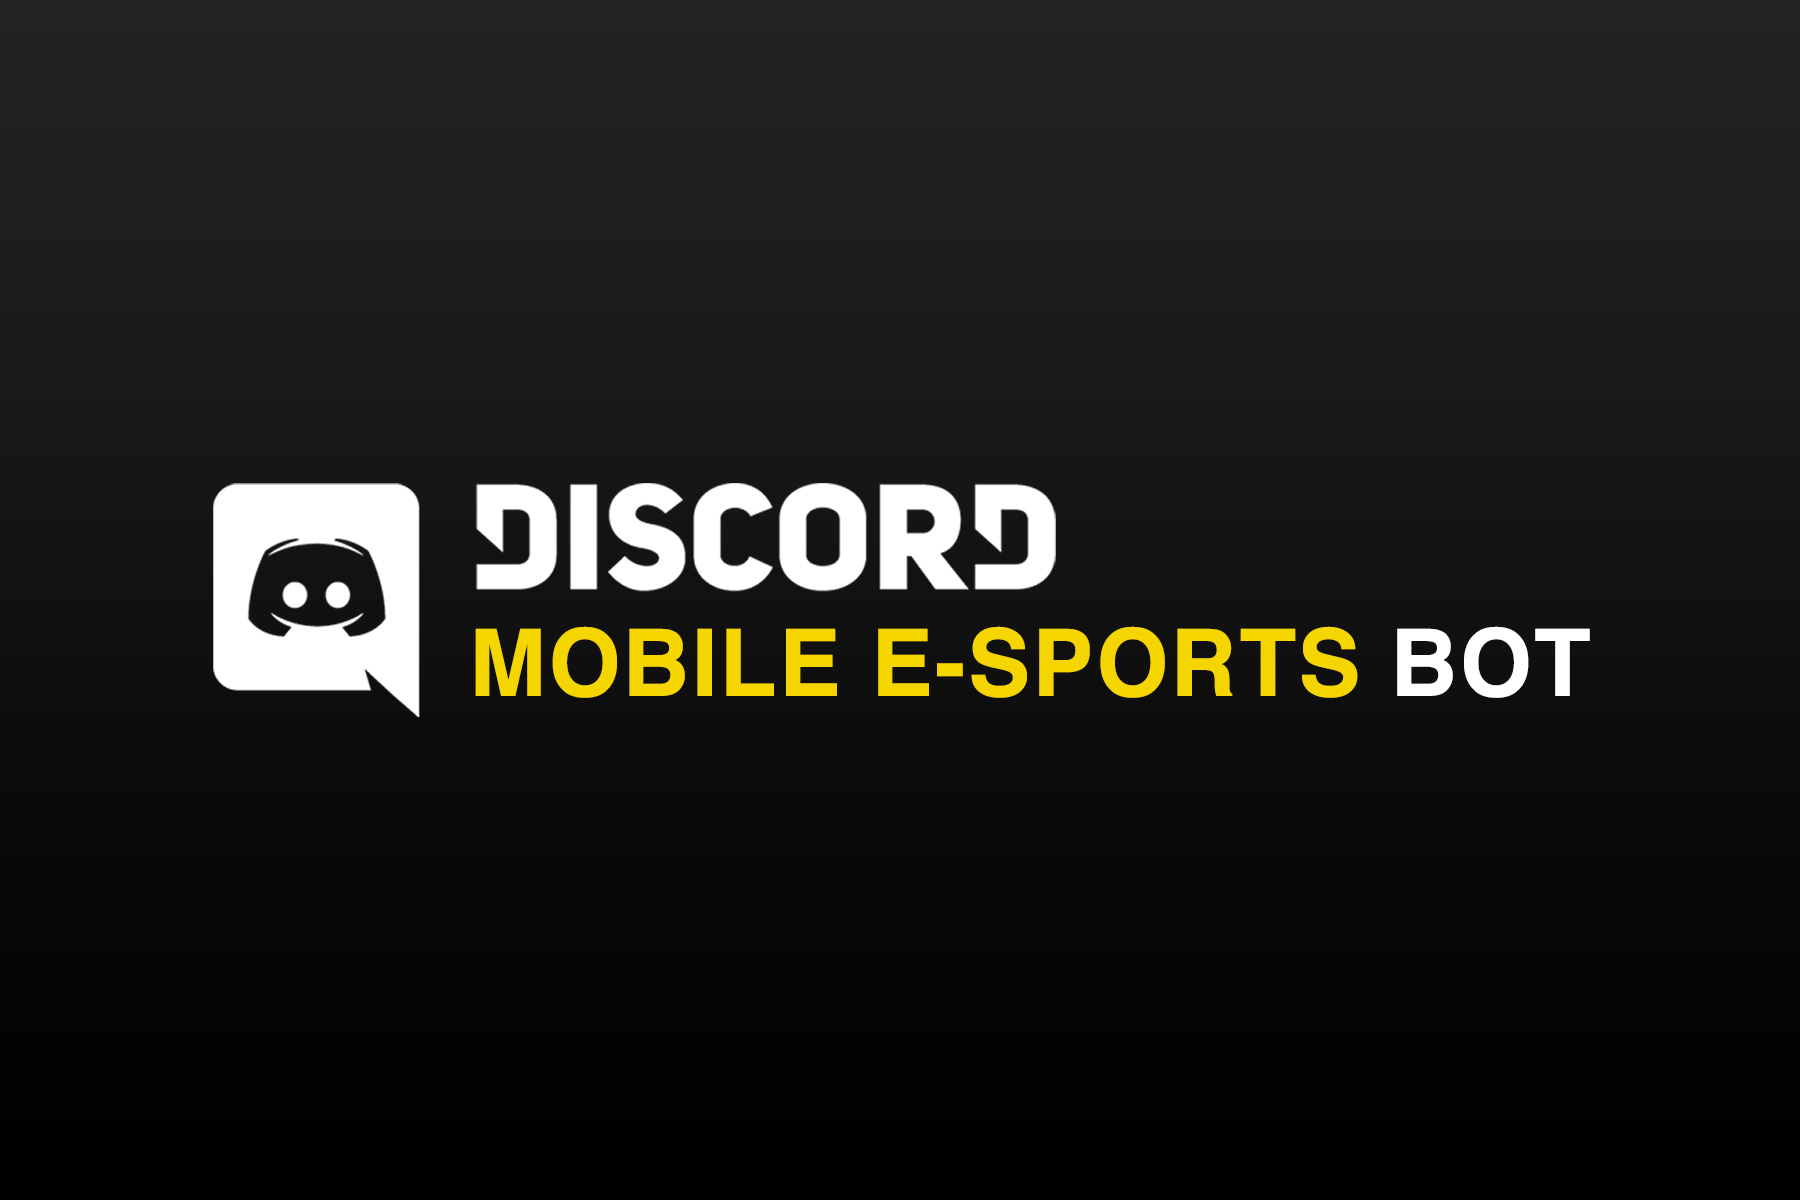 Mobile E Sports Bot A Simpler Way To Manage Your Team Mobile E Sports